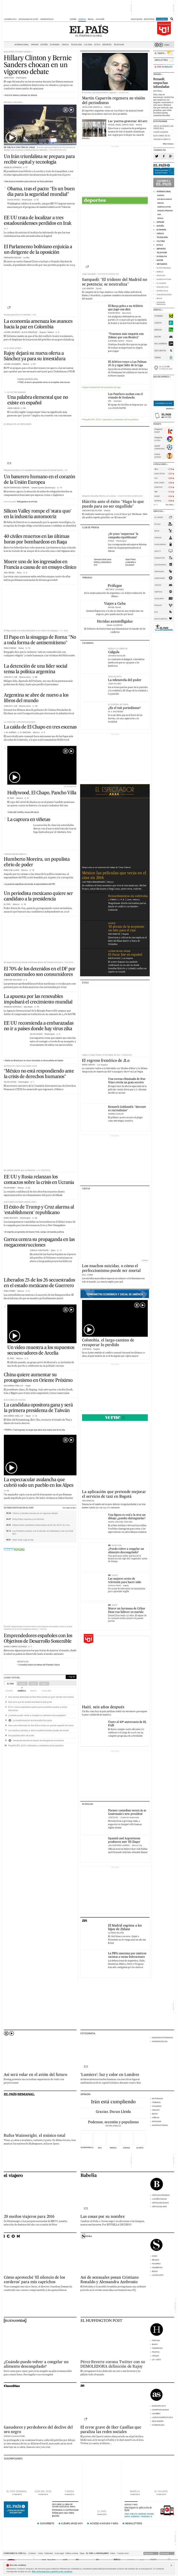 El Pais at Monday Jan. 18, 2016, 5:21 a.m. UTC